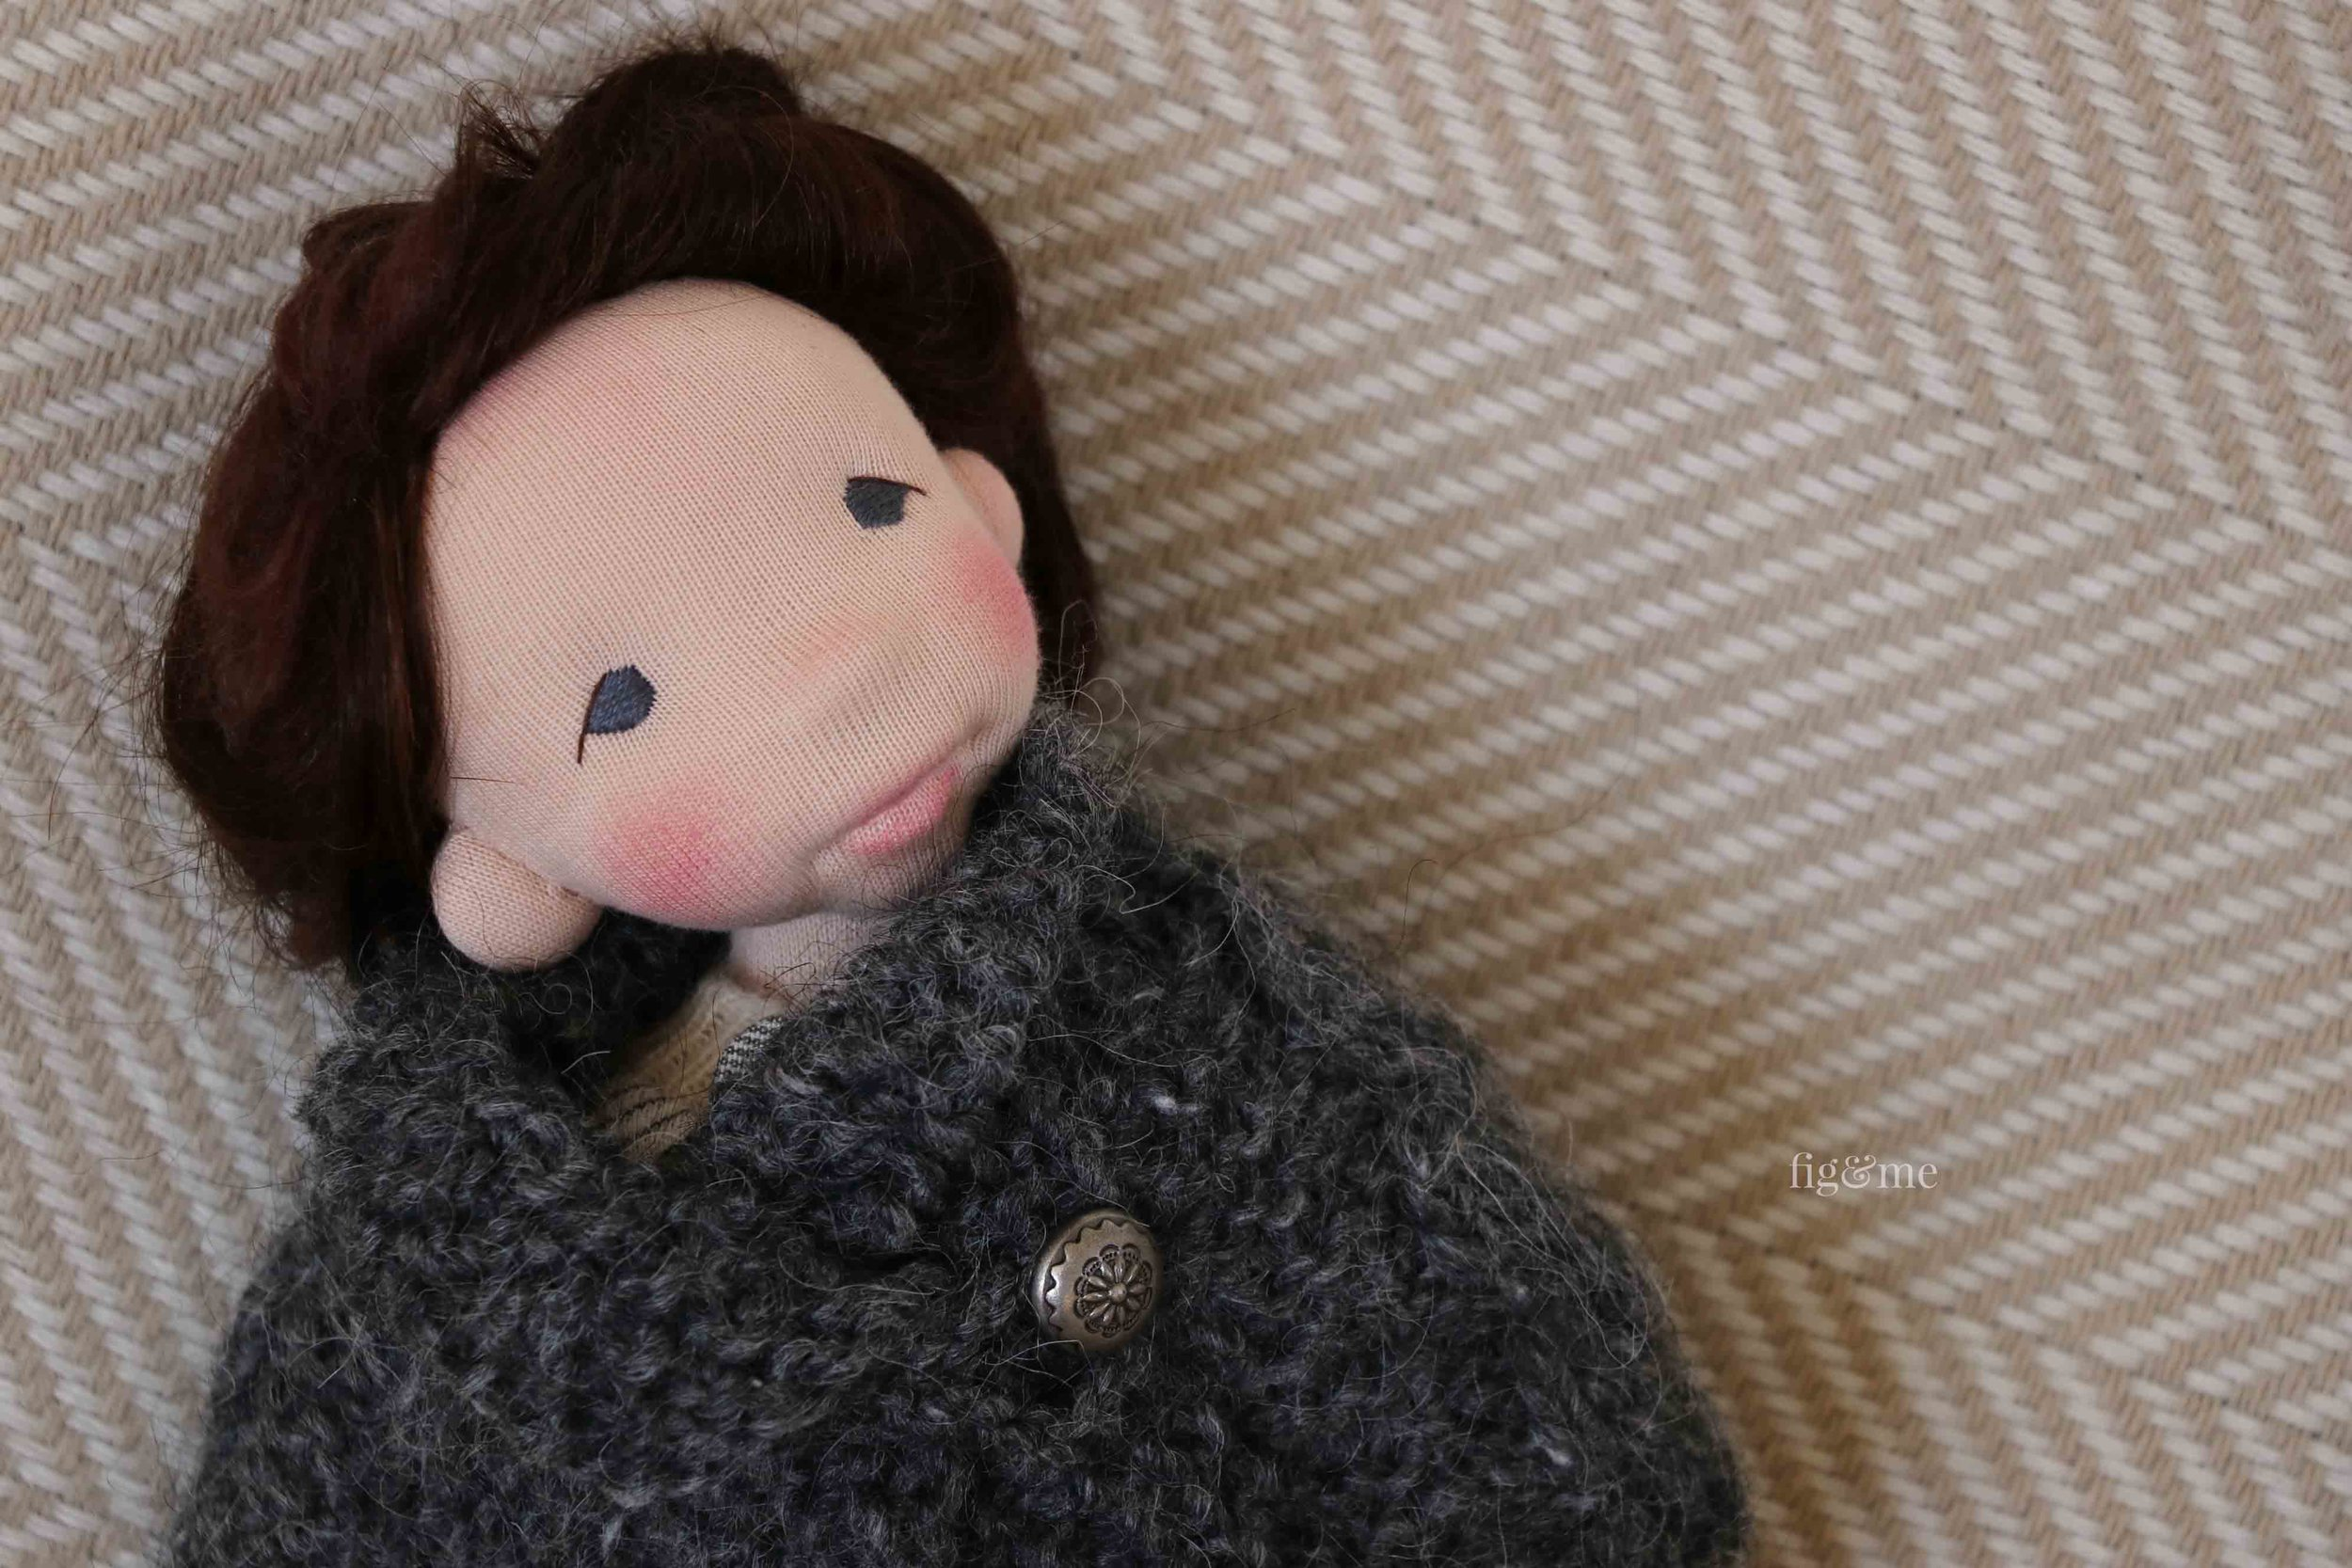 Snow: a doll sculpted in wool with a jointed head. By Fig and Me.